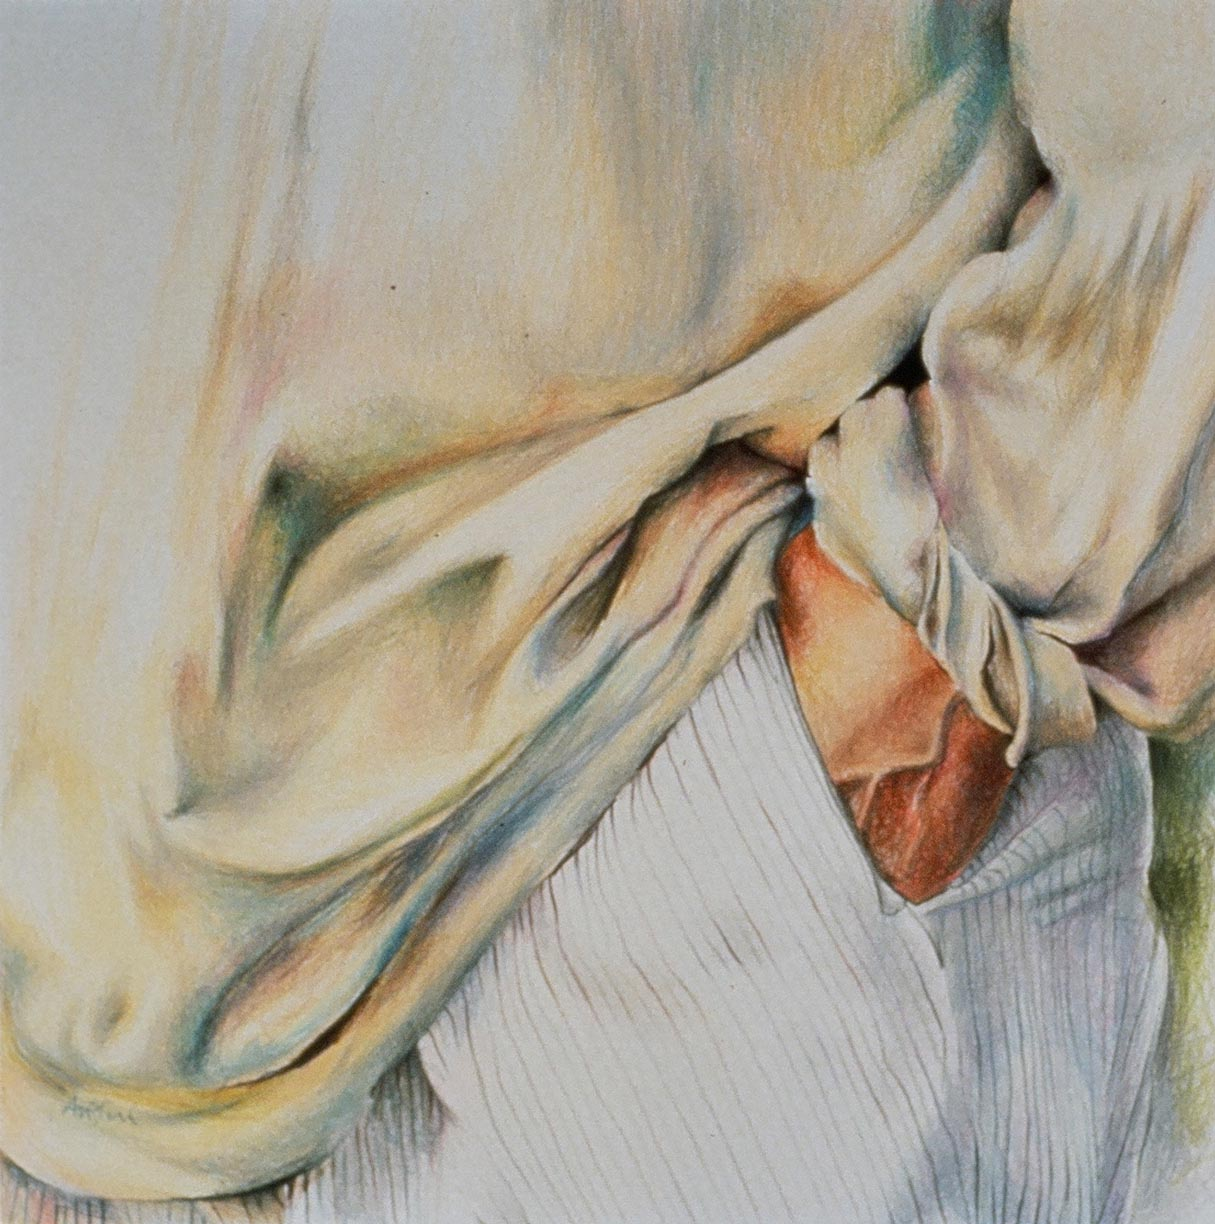 coloured pencil on paper  [SOLD]